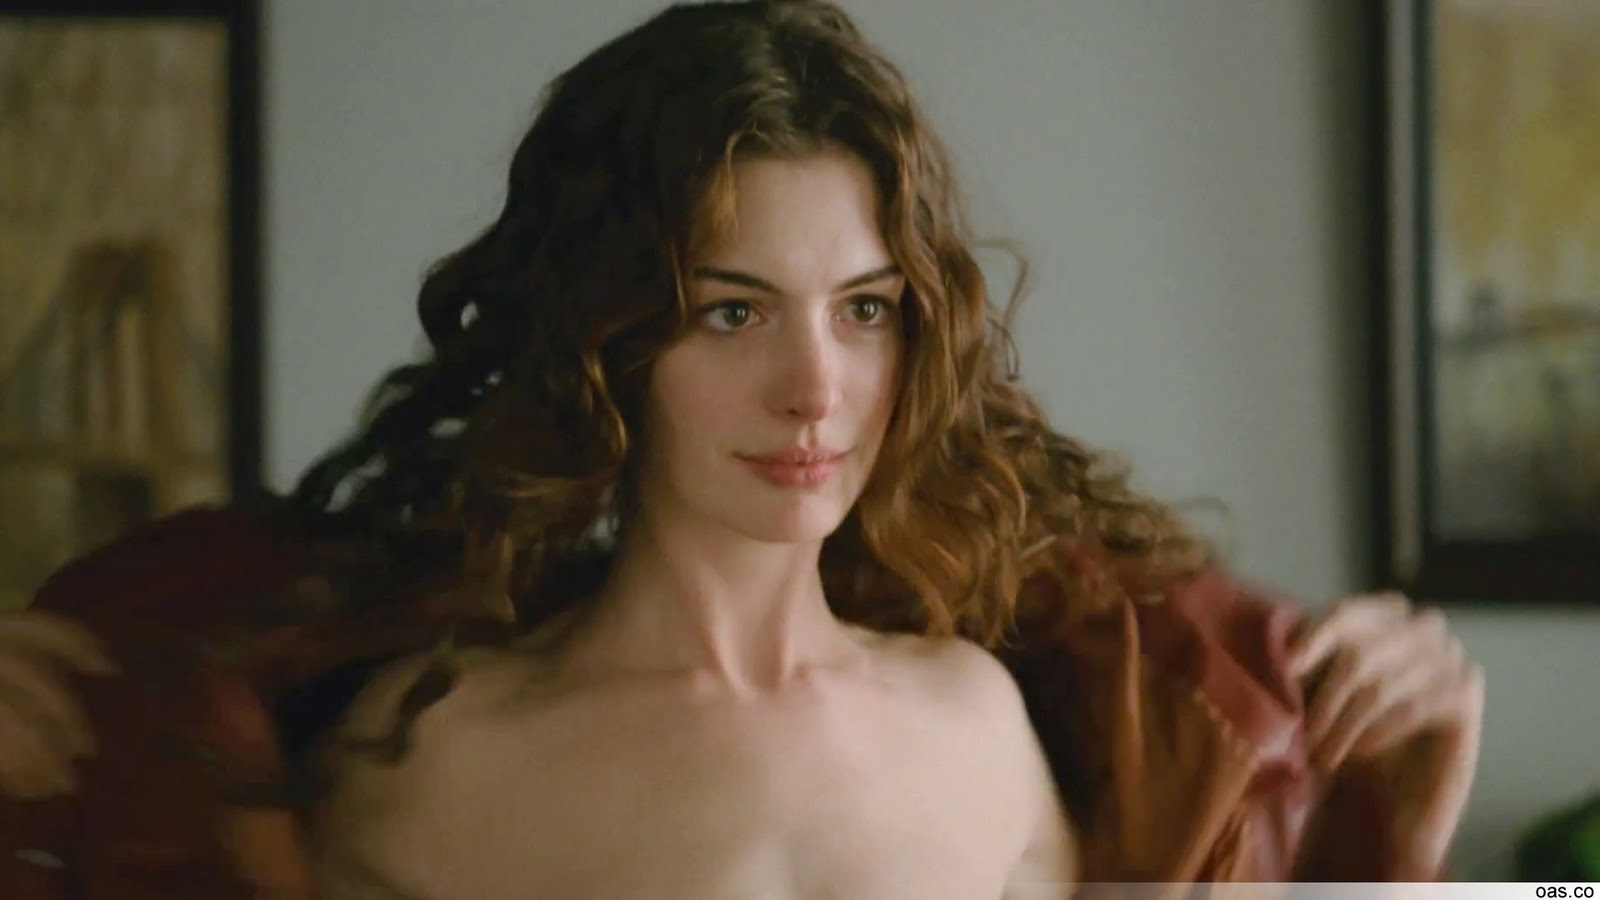 Nude pics of anne hathaway pic 204